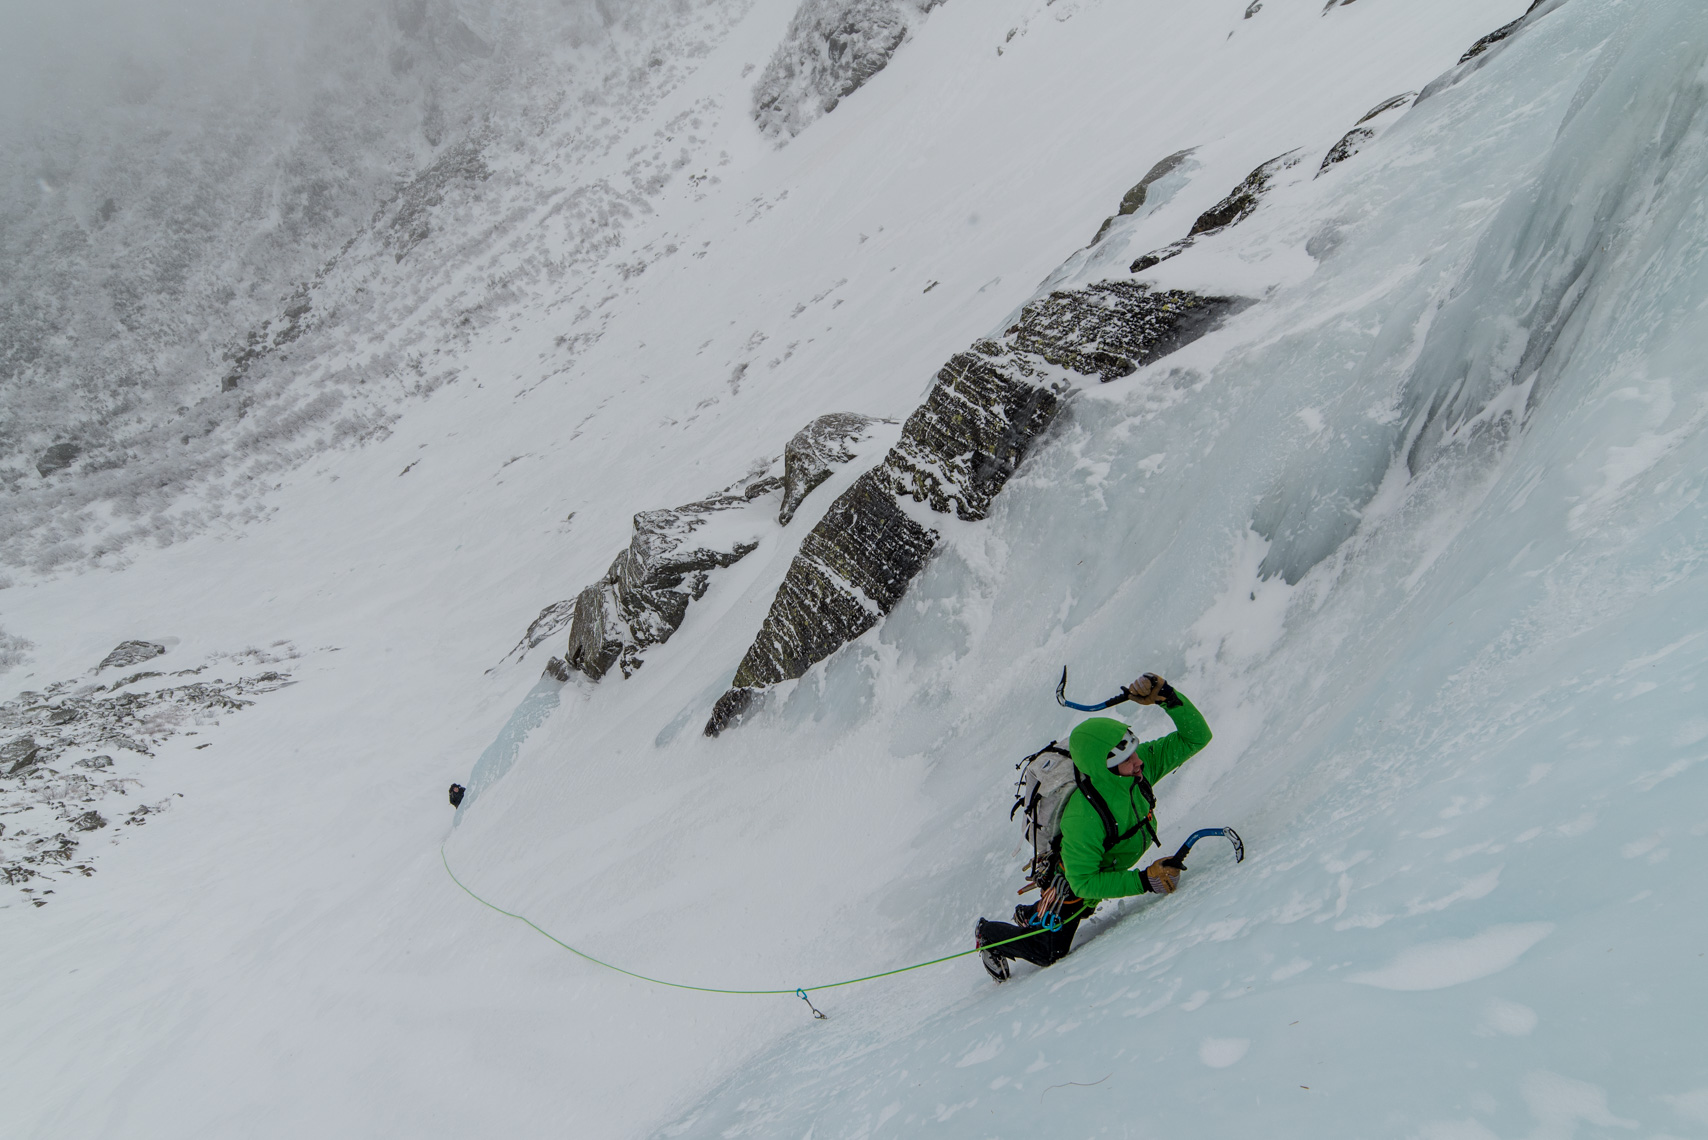 Ice climbing in Tuckerman Ravine